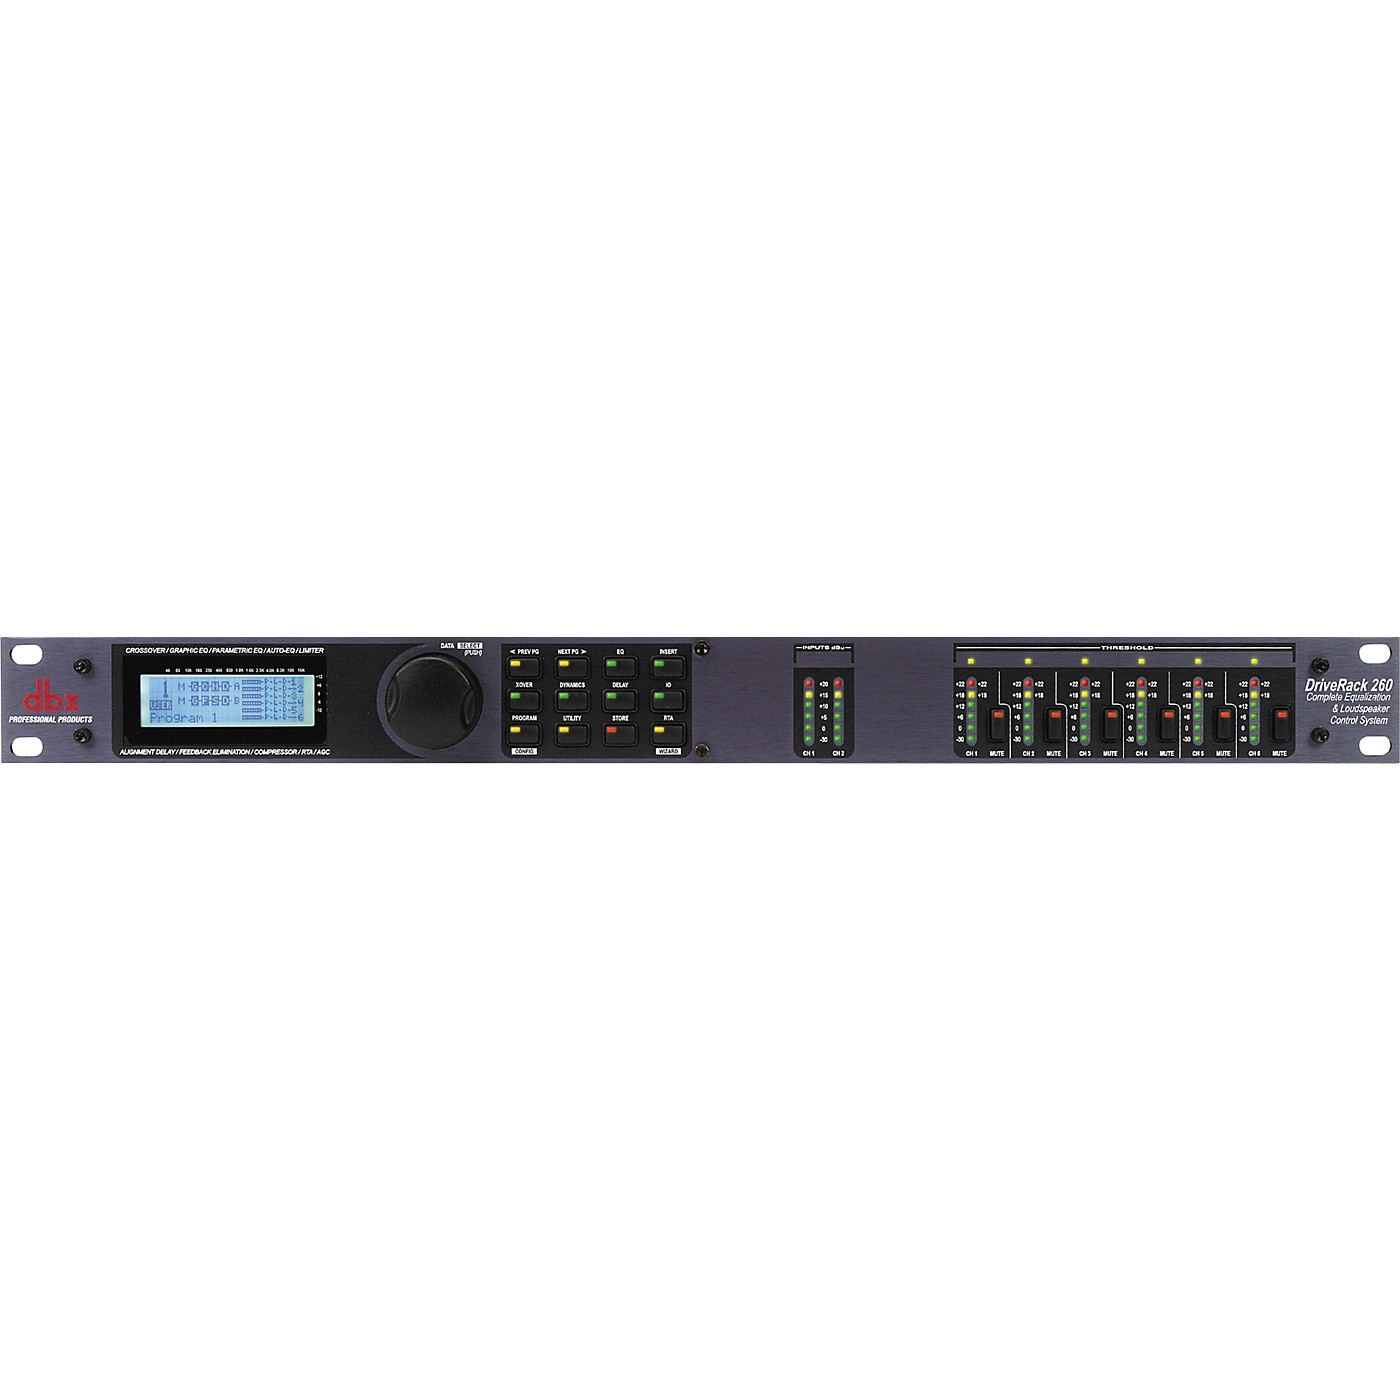 dbx DriveRack 260 Complete Equalization and Loudspeaker Control System thumbnail